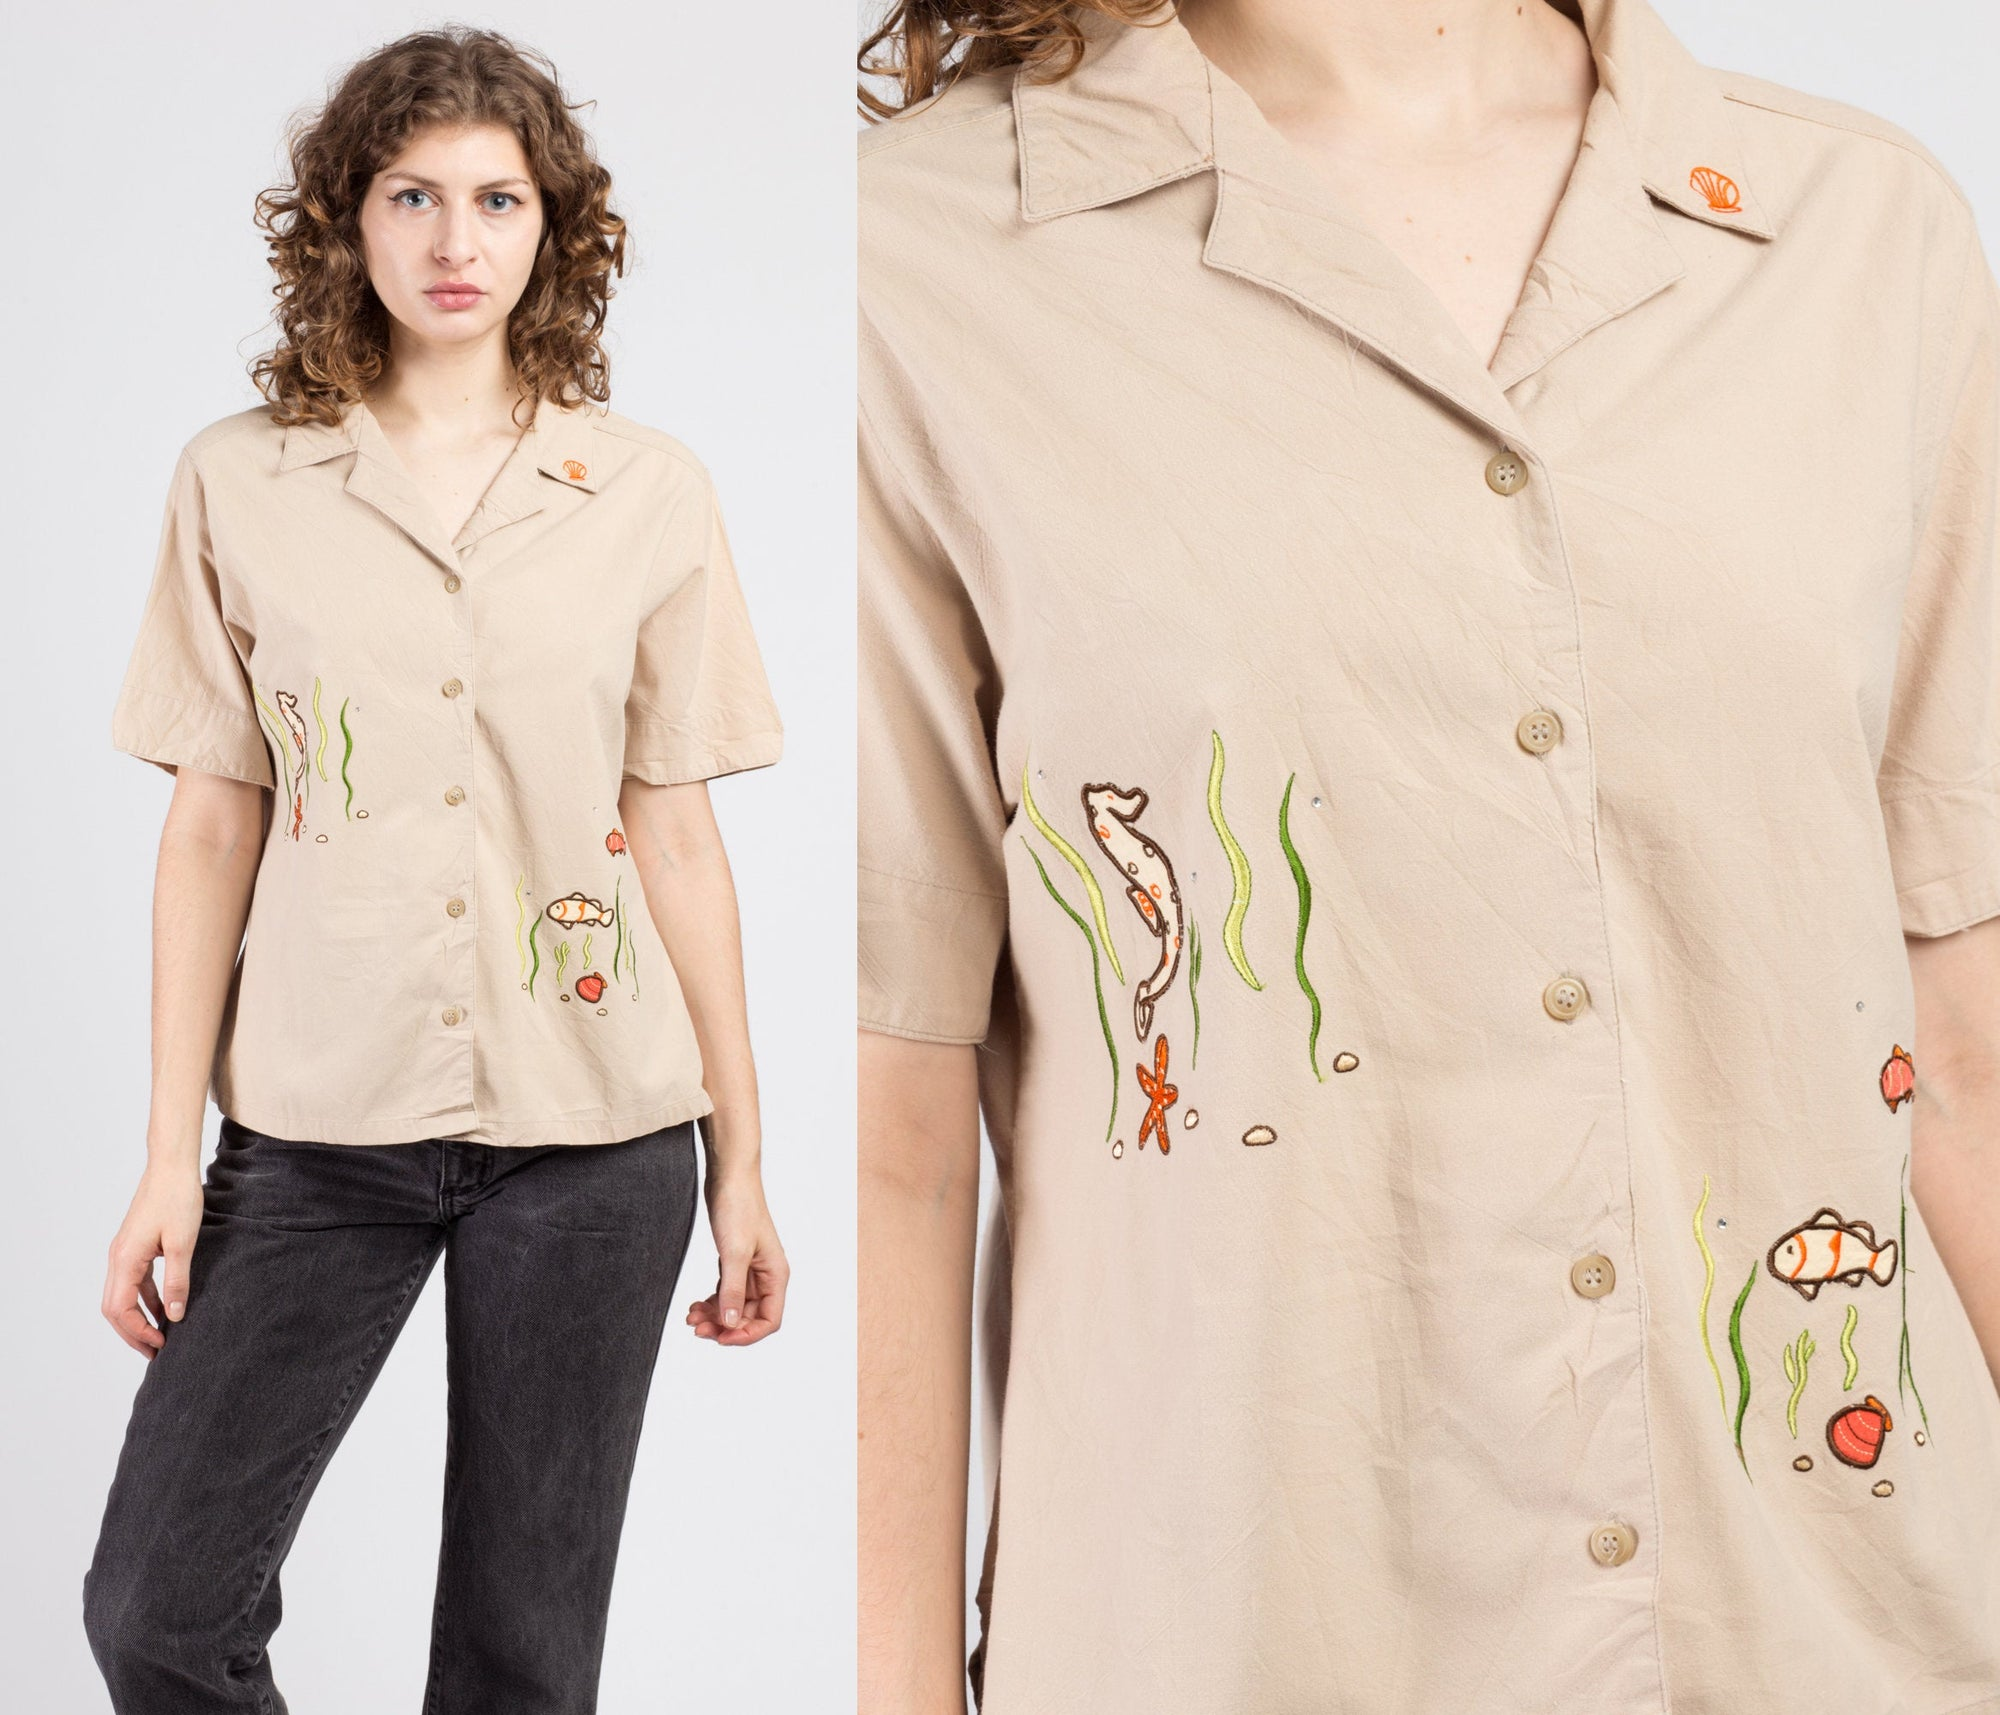 90s Khaki Sea Creature Shirt - Large